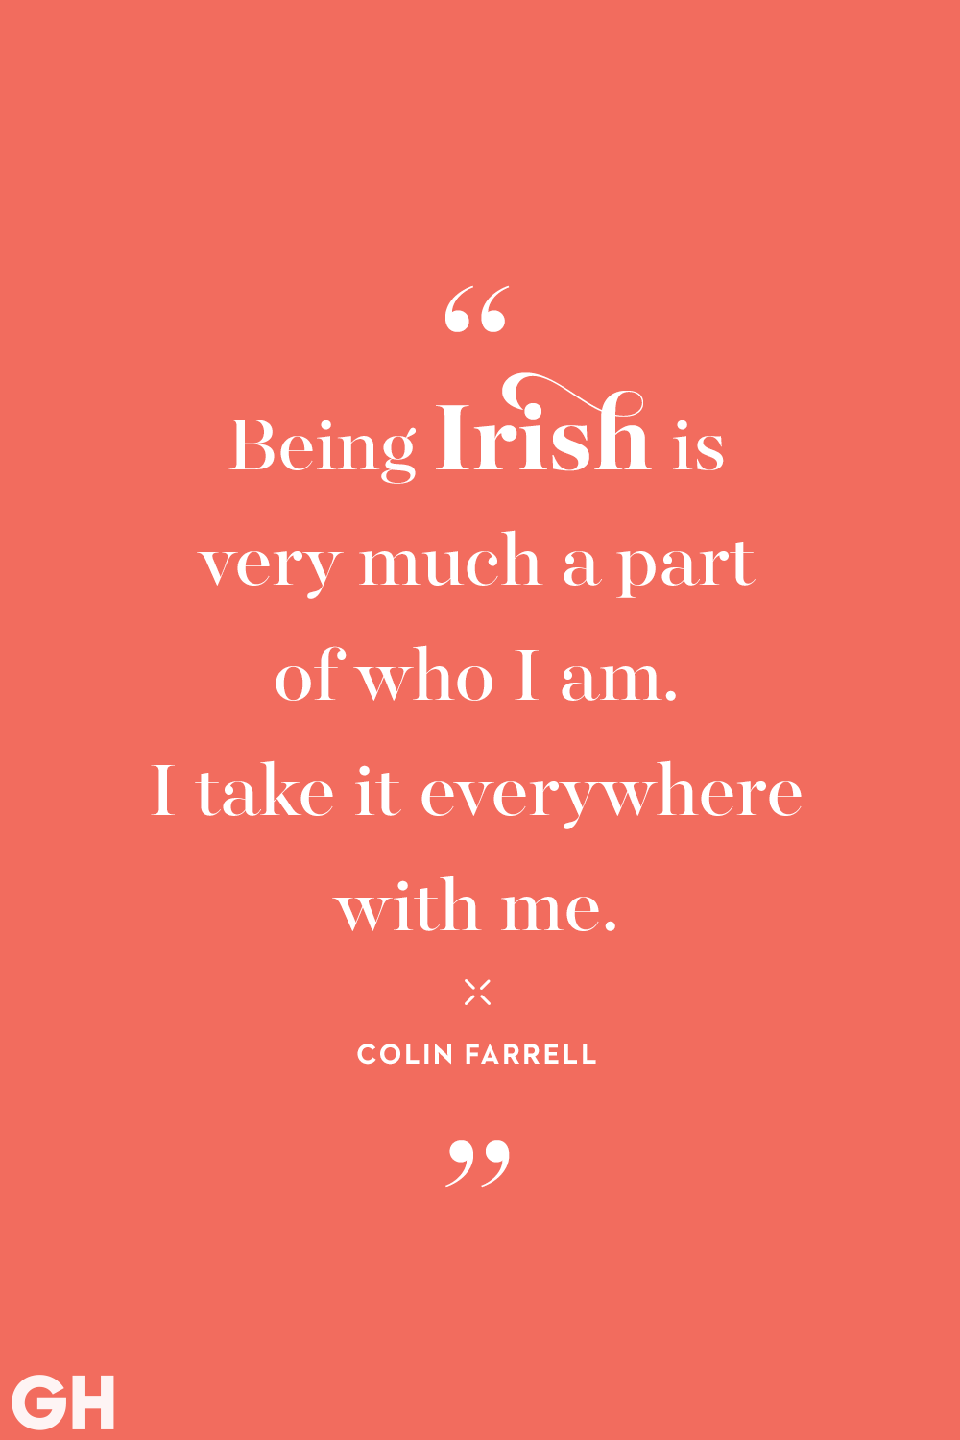 <p>Being Irish is very much a part of who I am. I take it everywhere with me.</p>